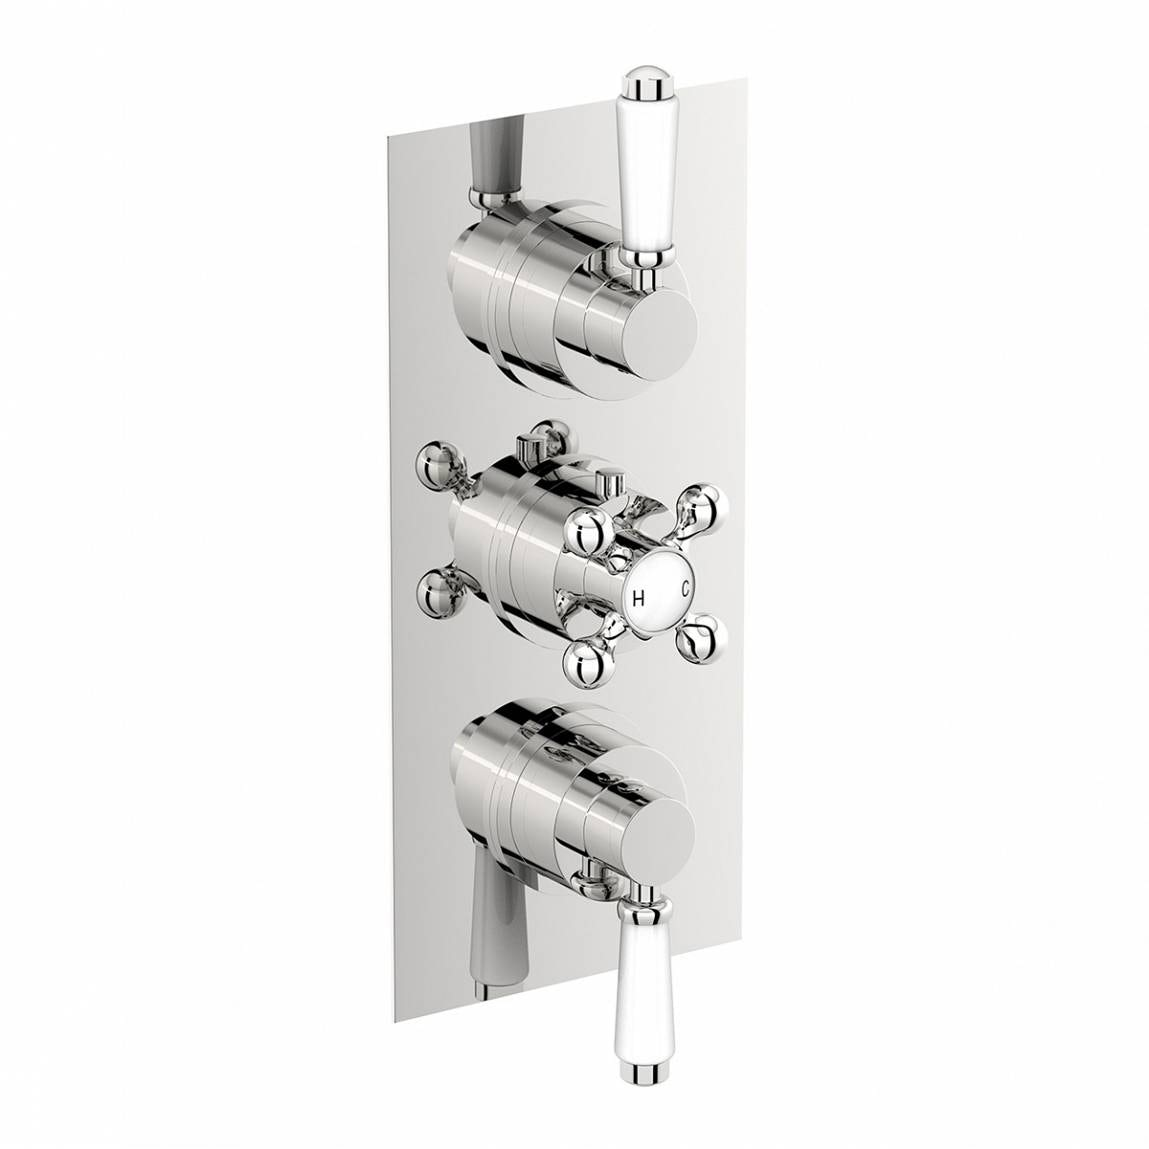 The Bath Co. Winchester triple thermostatic shower valve